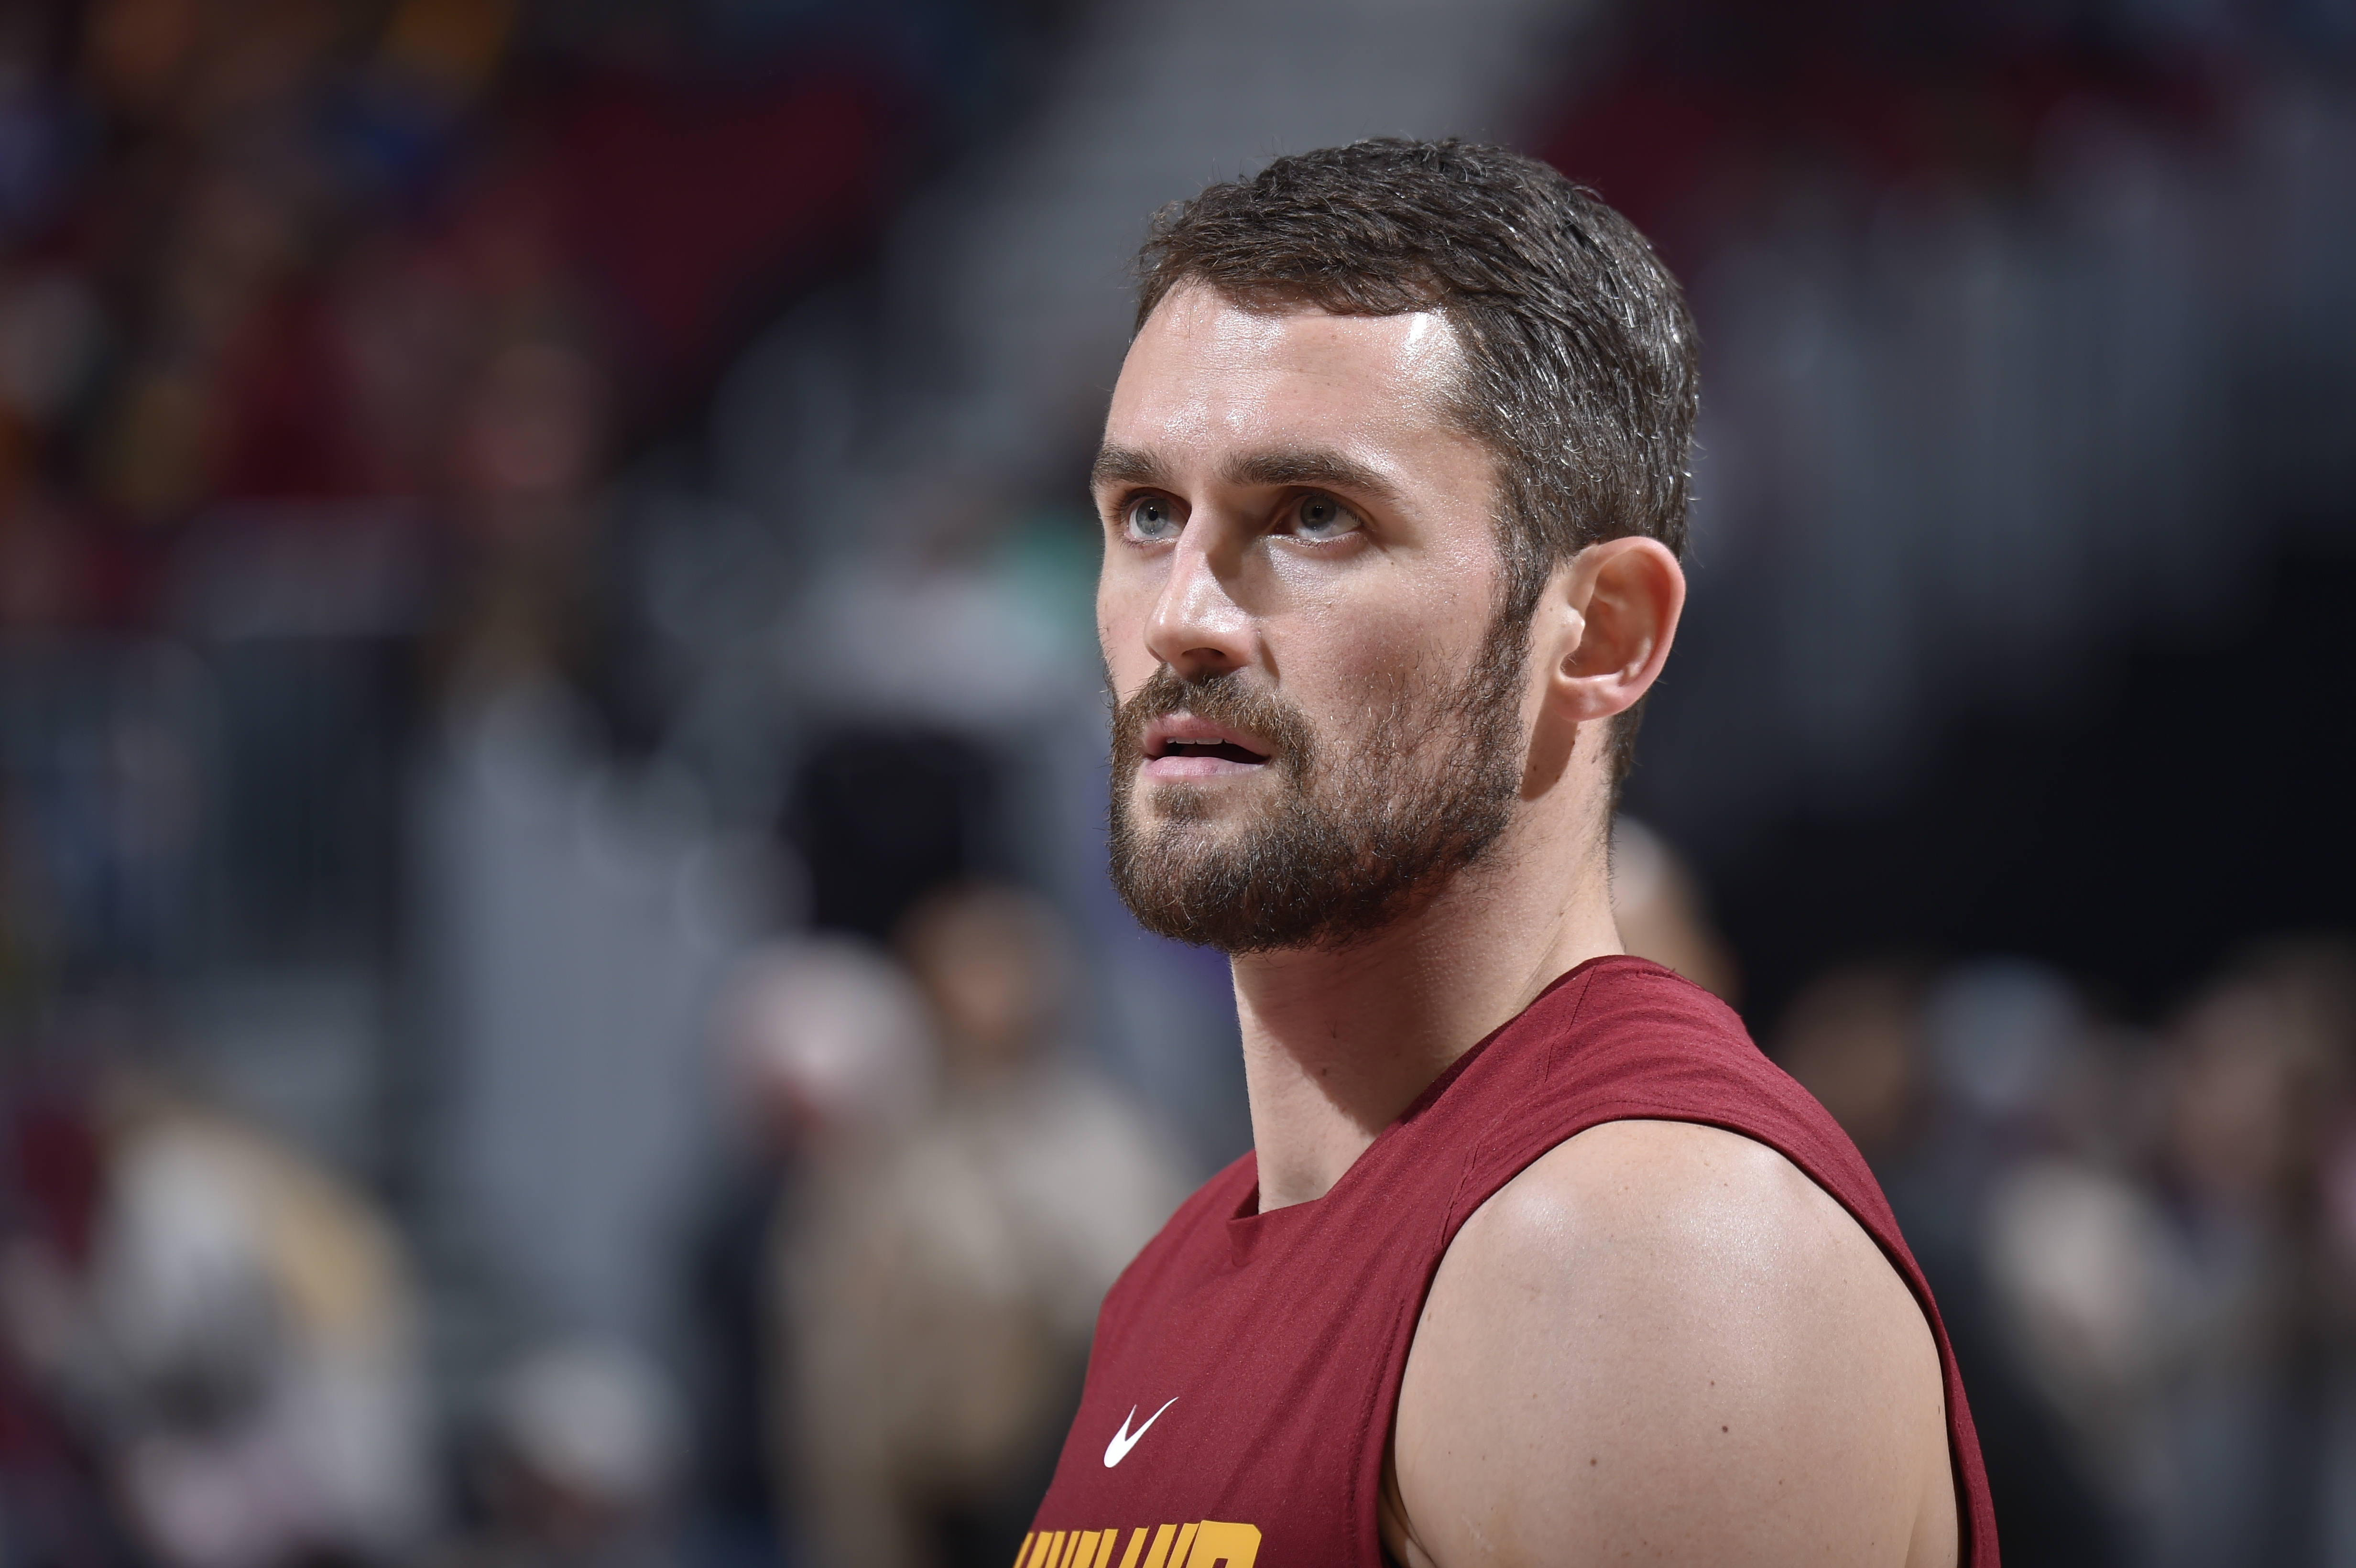 Kevin Love Says He Suffered Panic During Game This Season Nba Com